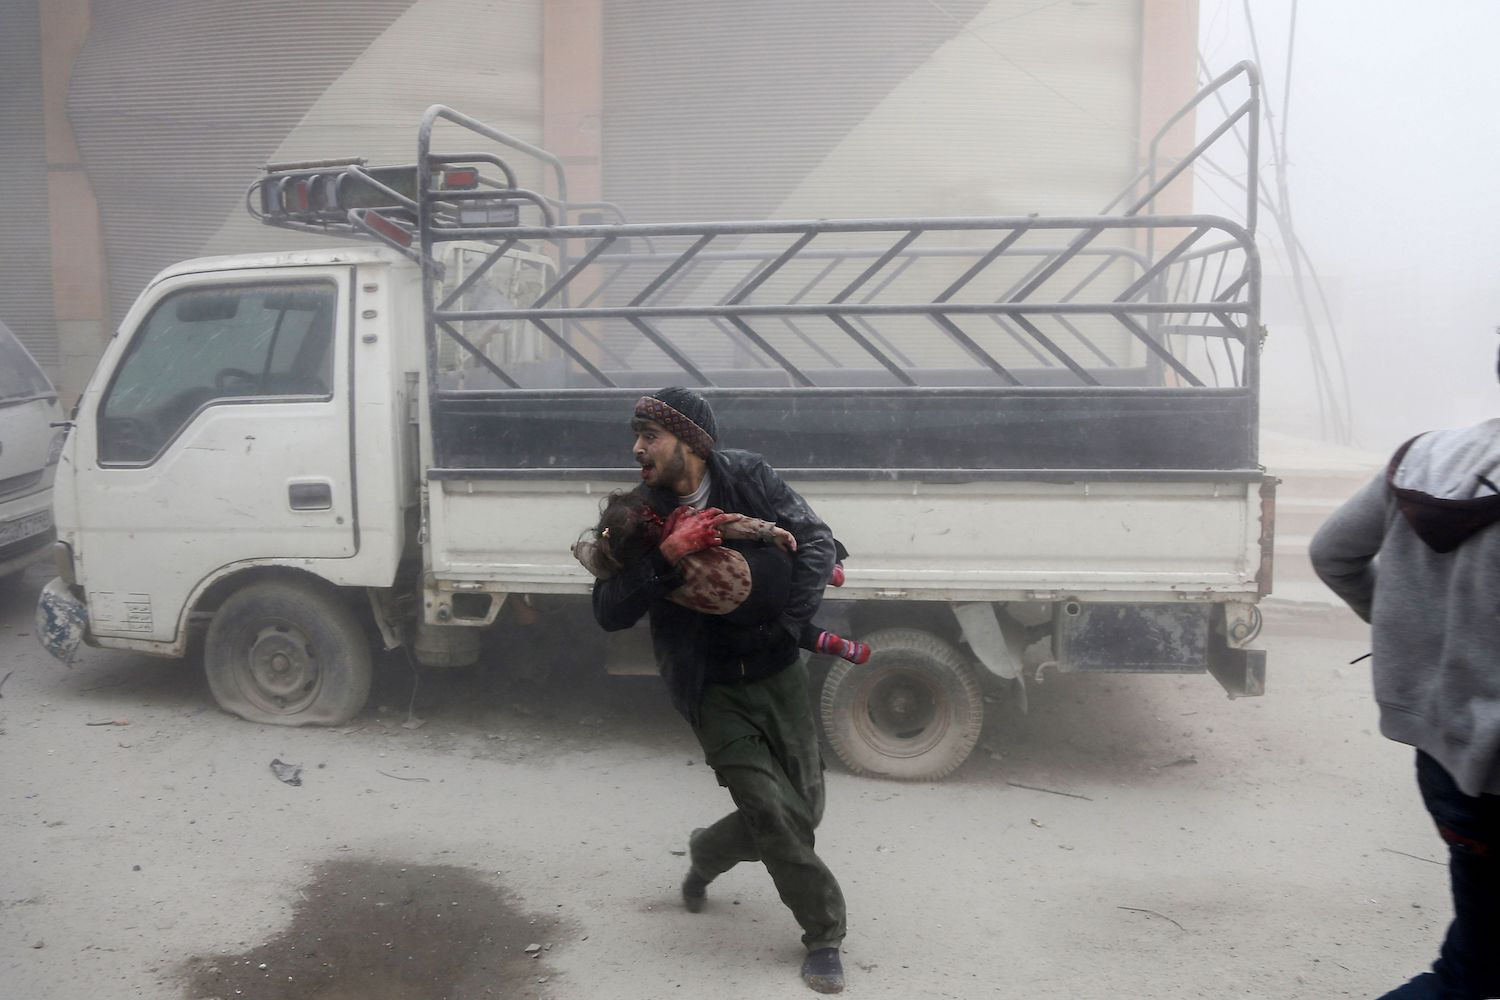 A man carries a child as he flees from reported Syrian air force strikes that hit the rebel-held town of Saqba, in the besieged Eastern Ghouta region on the outskirts of the capital Damascus, on February 6, 2018. Fresh regime strikes on a besieged rebel-held enclave near Damascus killed more than 60 civilians on February 6, despite mounting Western pressure on Syrian President Bashar al-Assad. / AFP PHOTO / ABDULMONAM EASSA        (Photo credit should read ABDULMONAM EASSA/AFP/Getty Images)